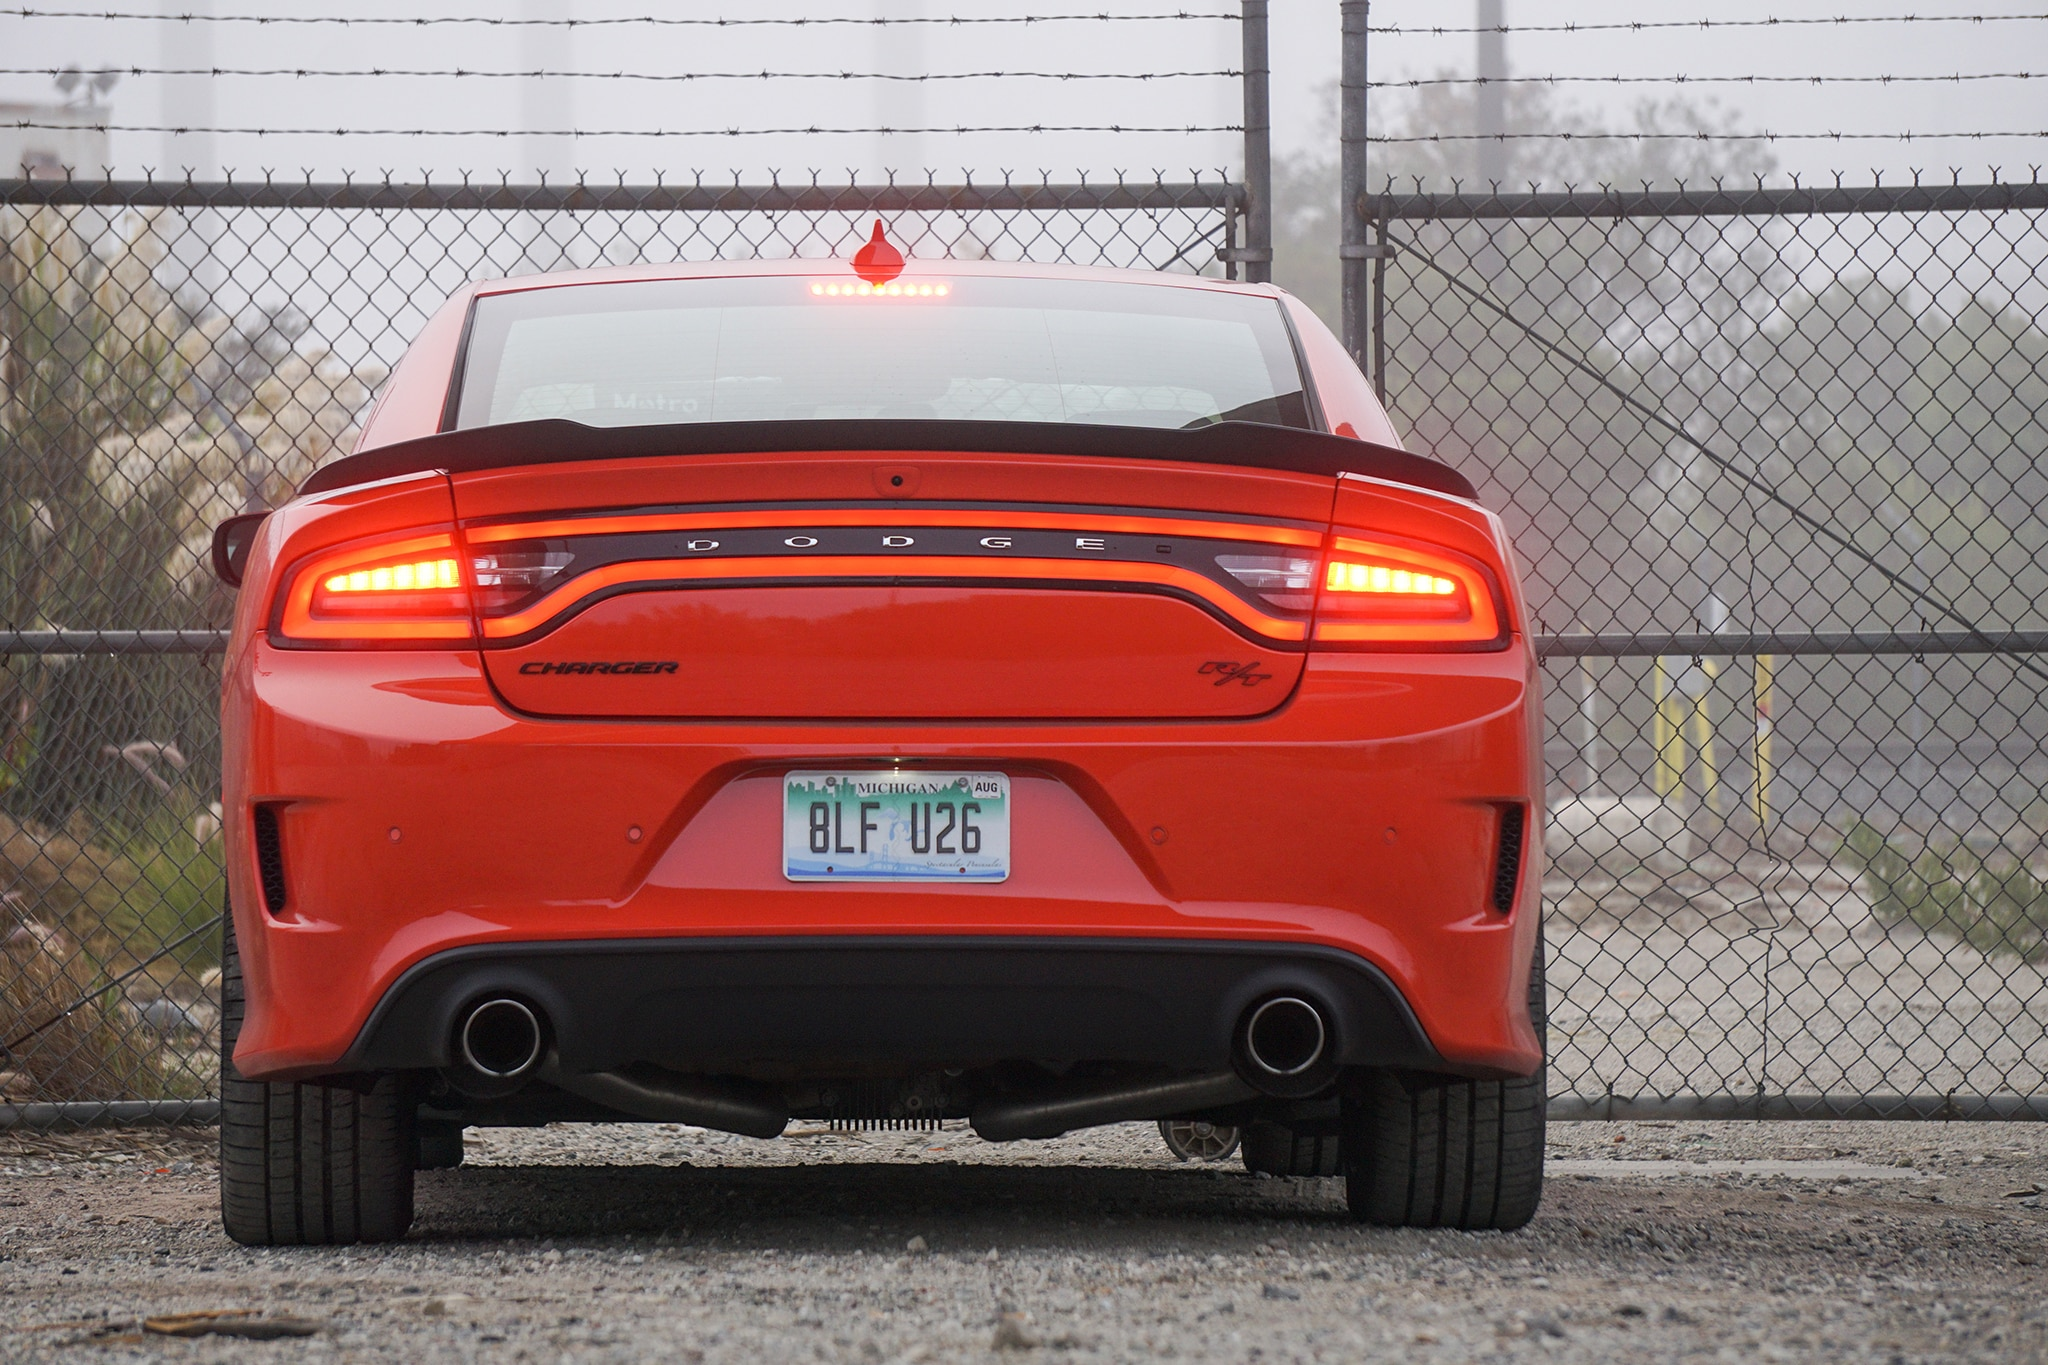 Dodge Charger Hellcat Price >> 2016 Dodge Charger R/T Scat Pack Quick Take Review | Automobile Magazine